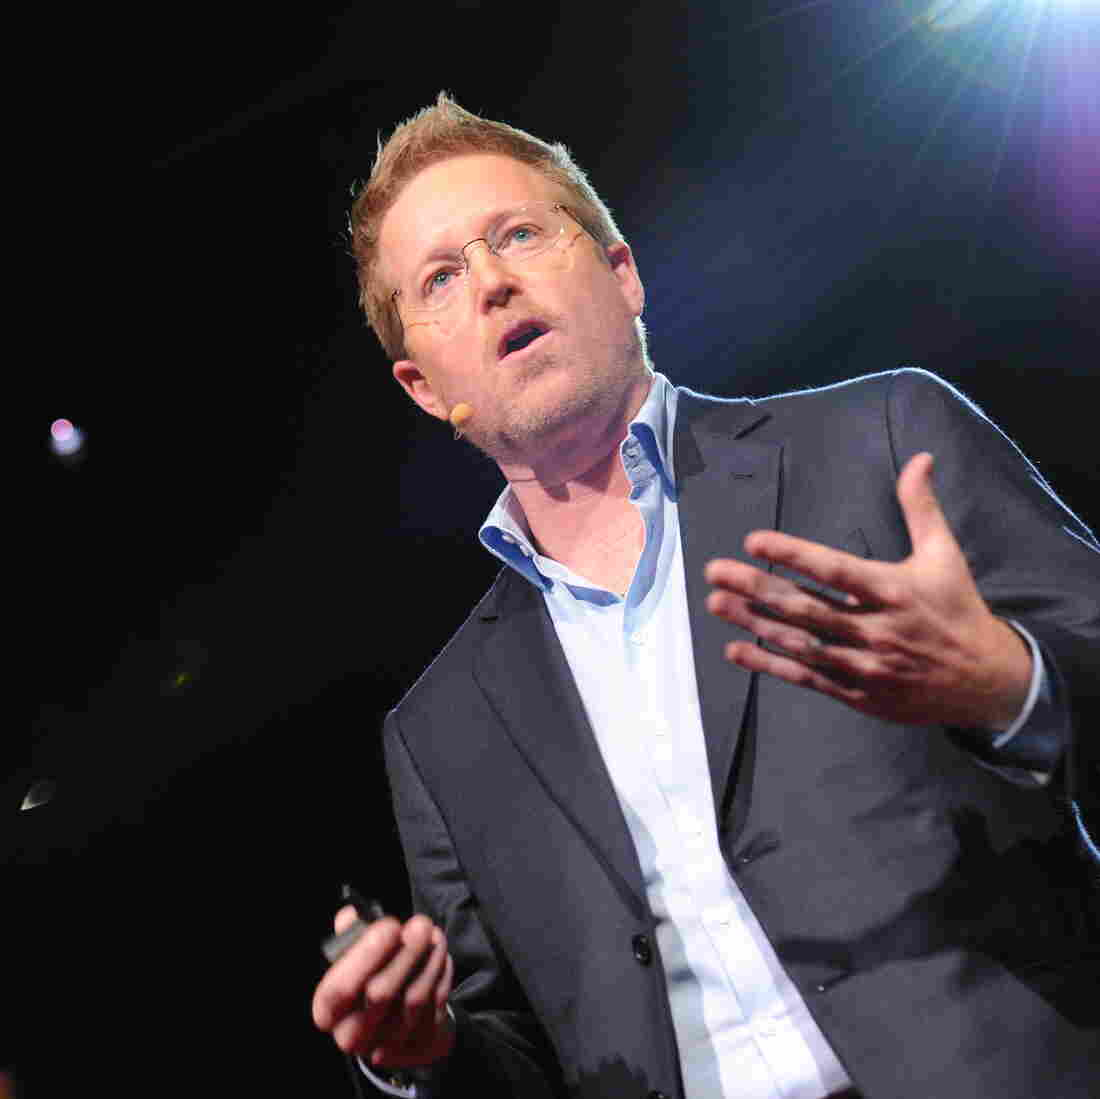 Andrew Stanton: What Makes A Good Story?